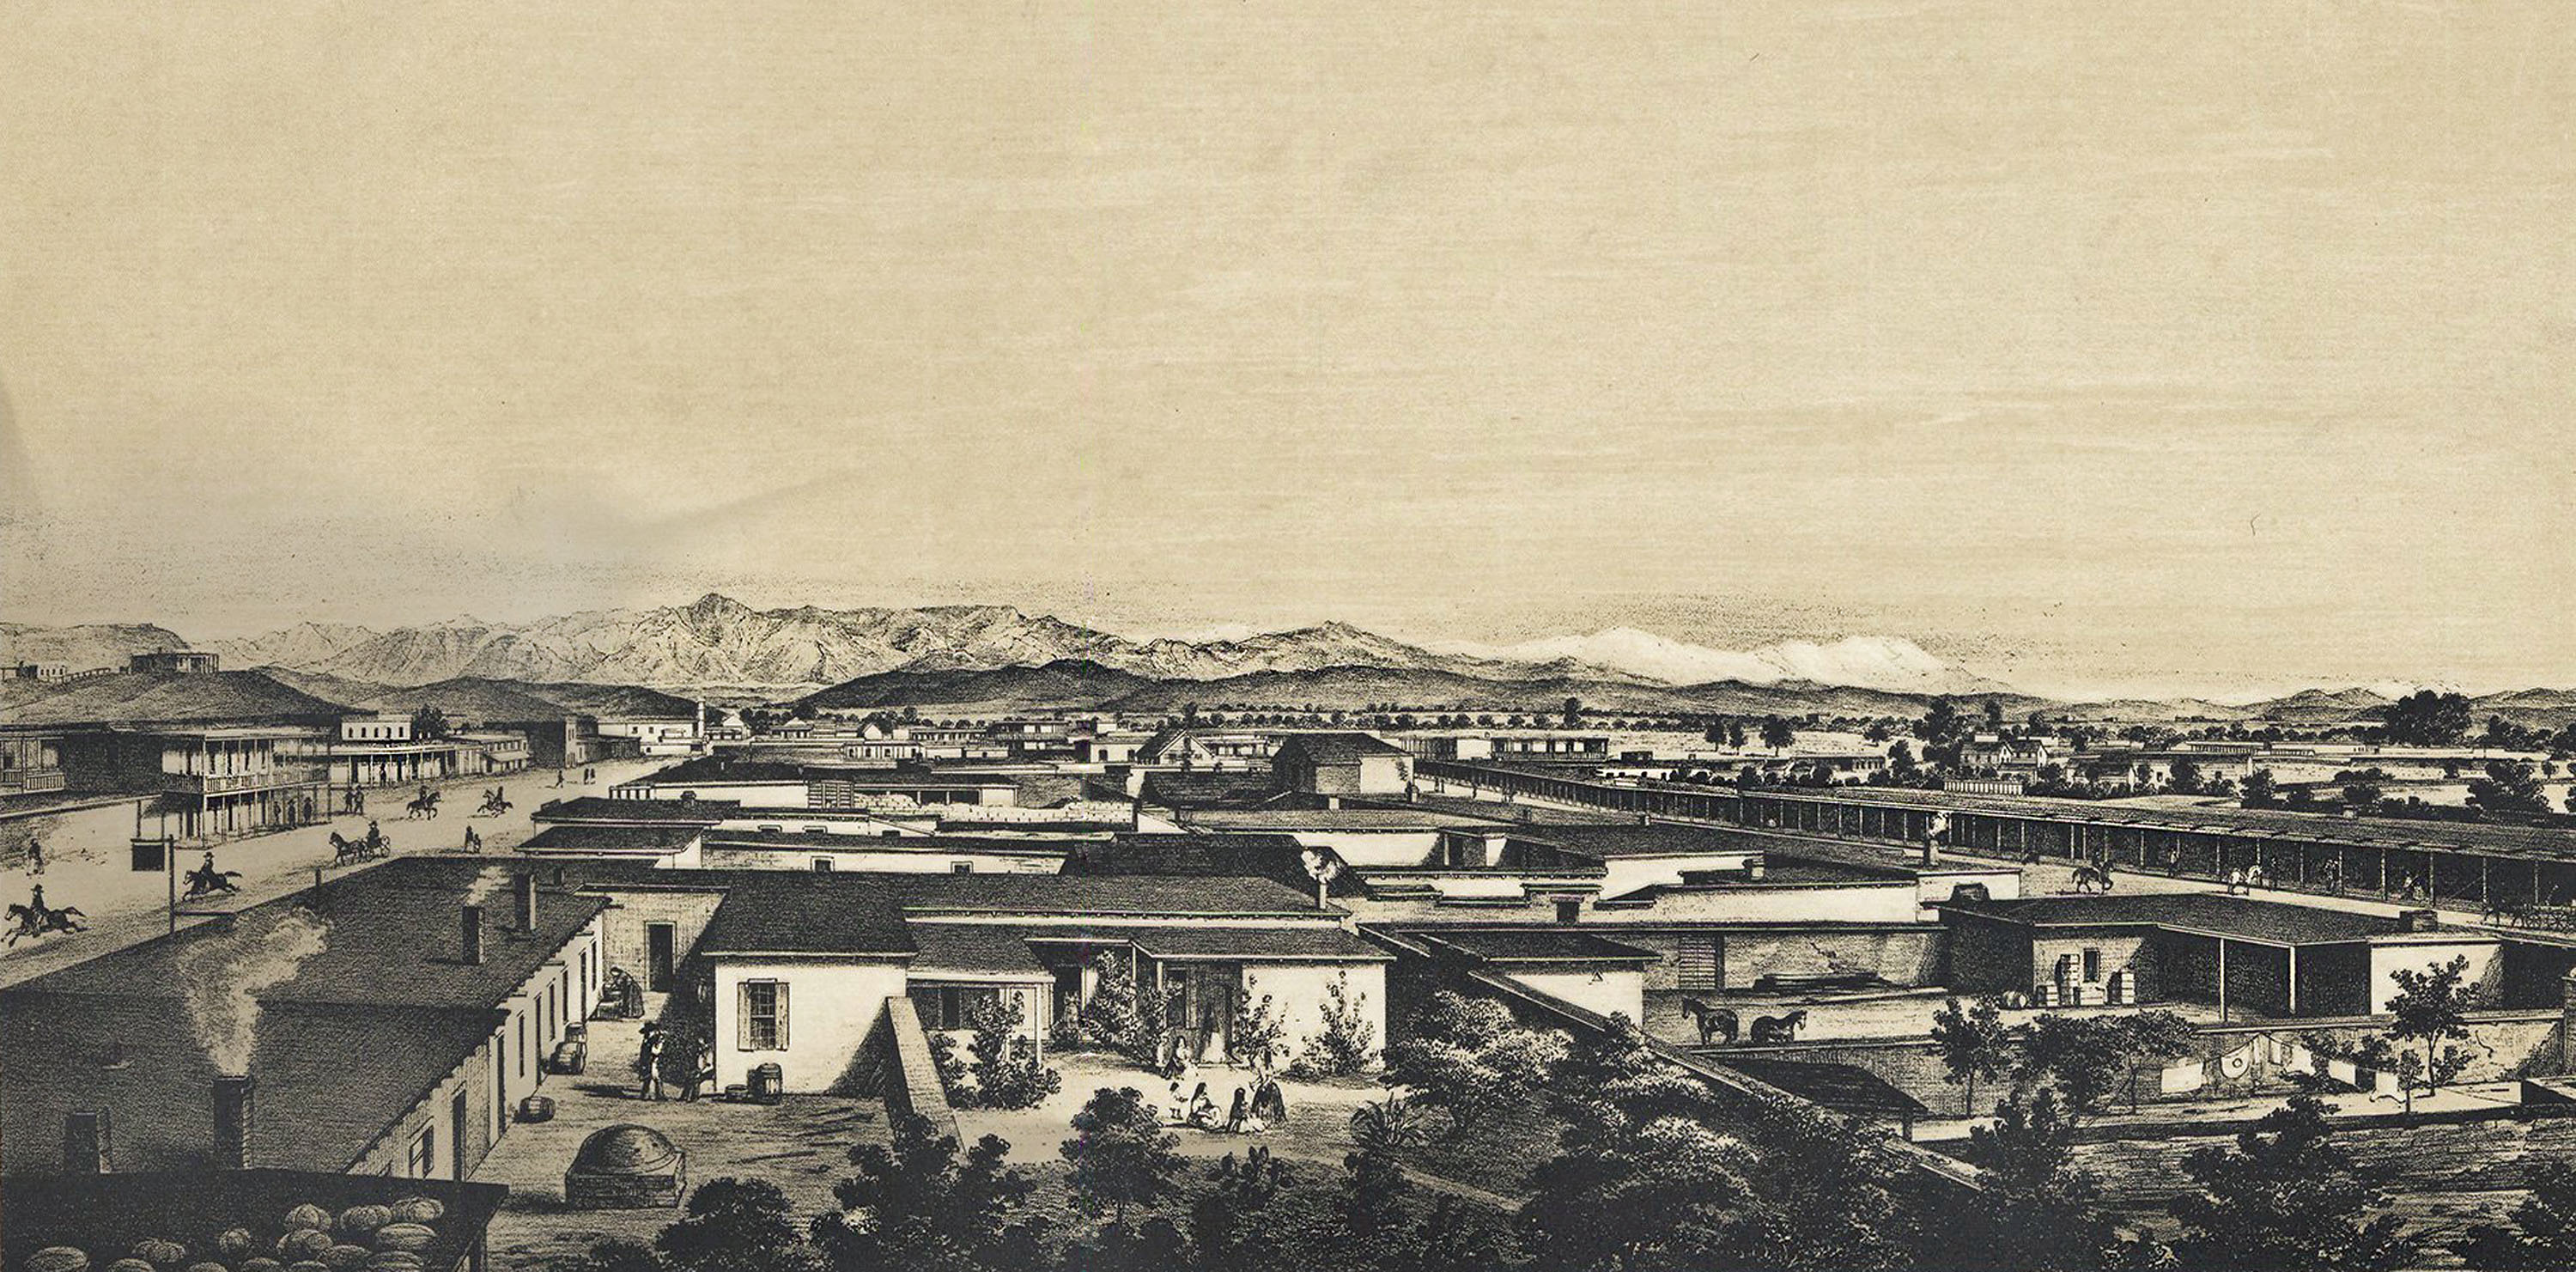 Los Angeles in 1857